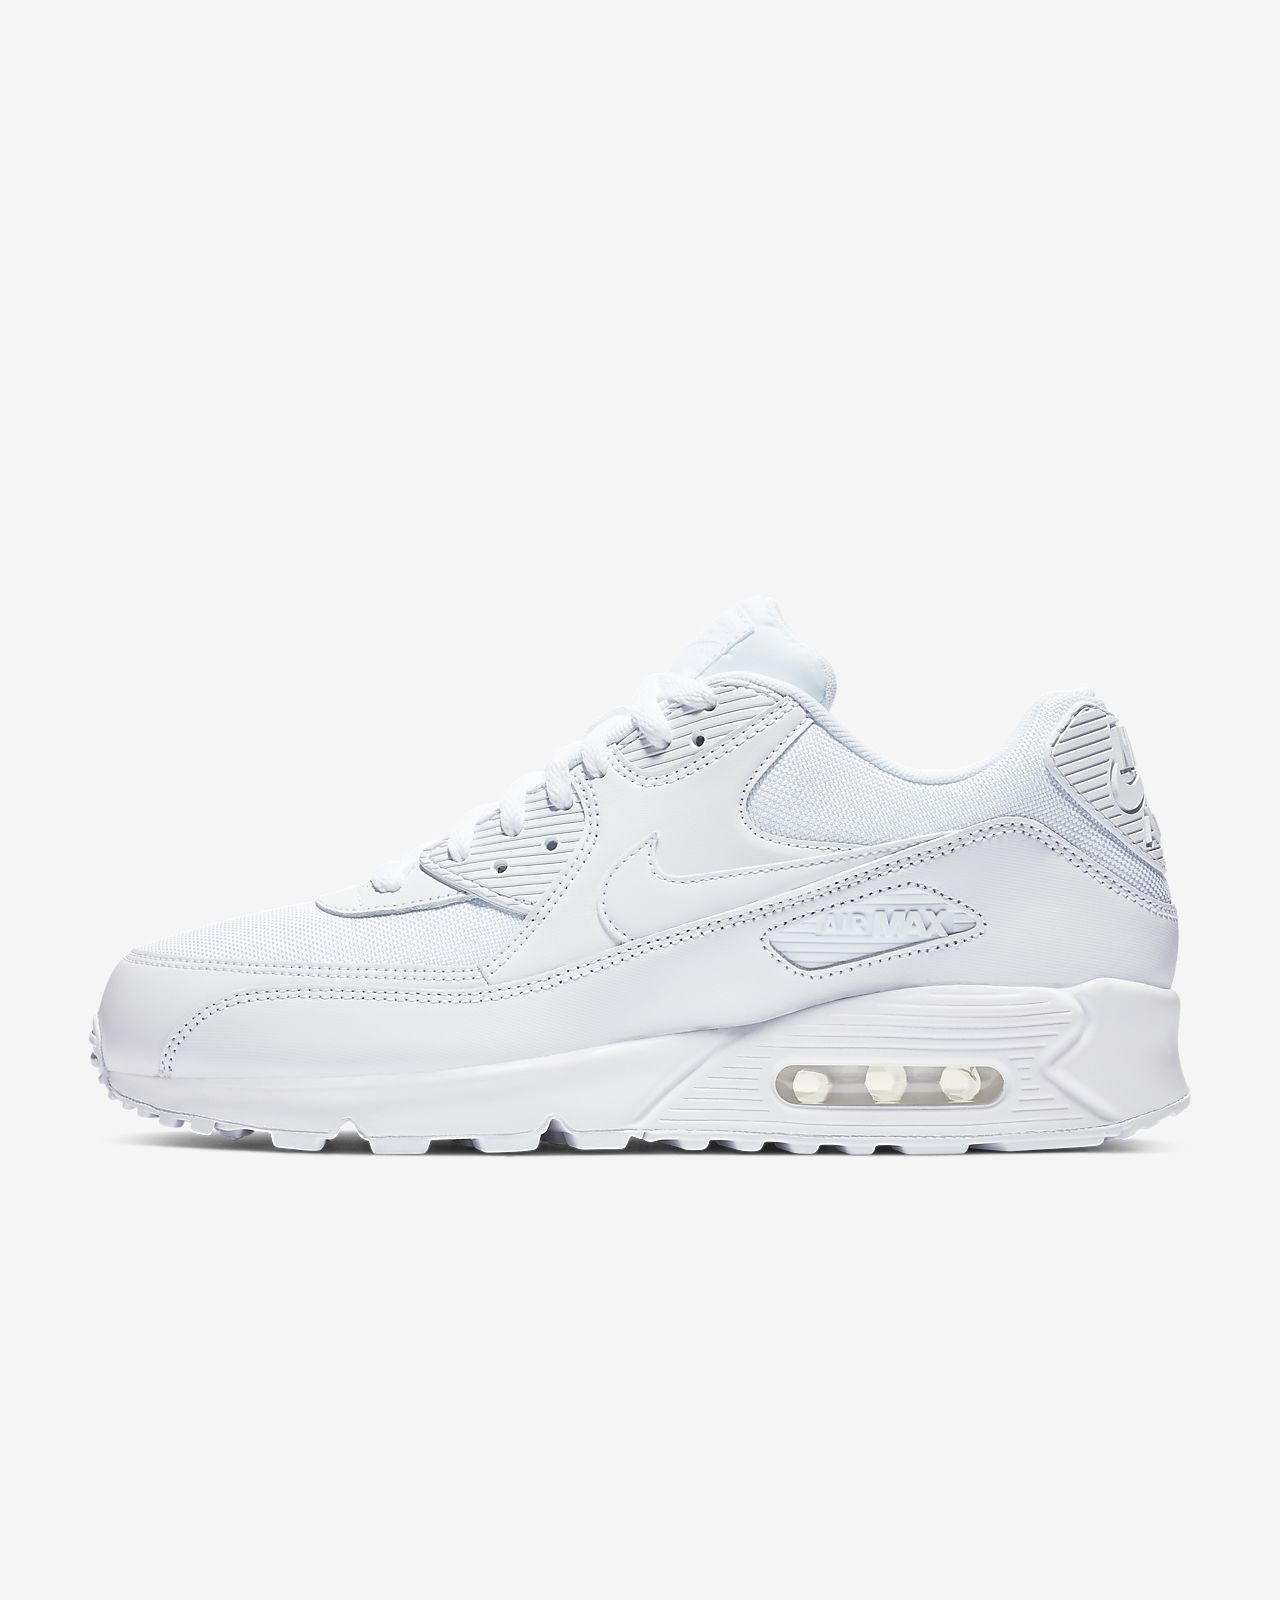 Nike Nike Air Max 90 Se Ltr (Ps) Kids Shoes Nike Coral